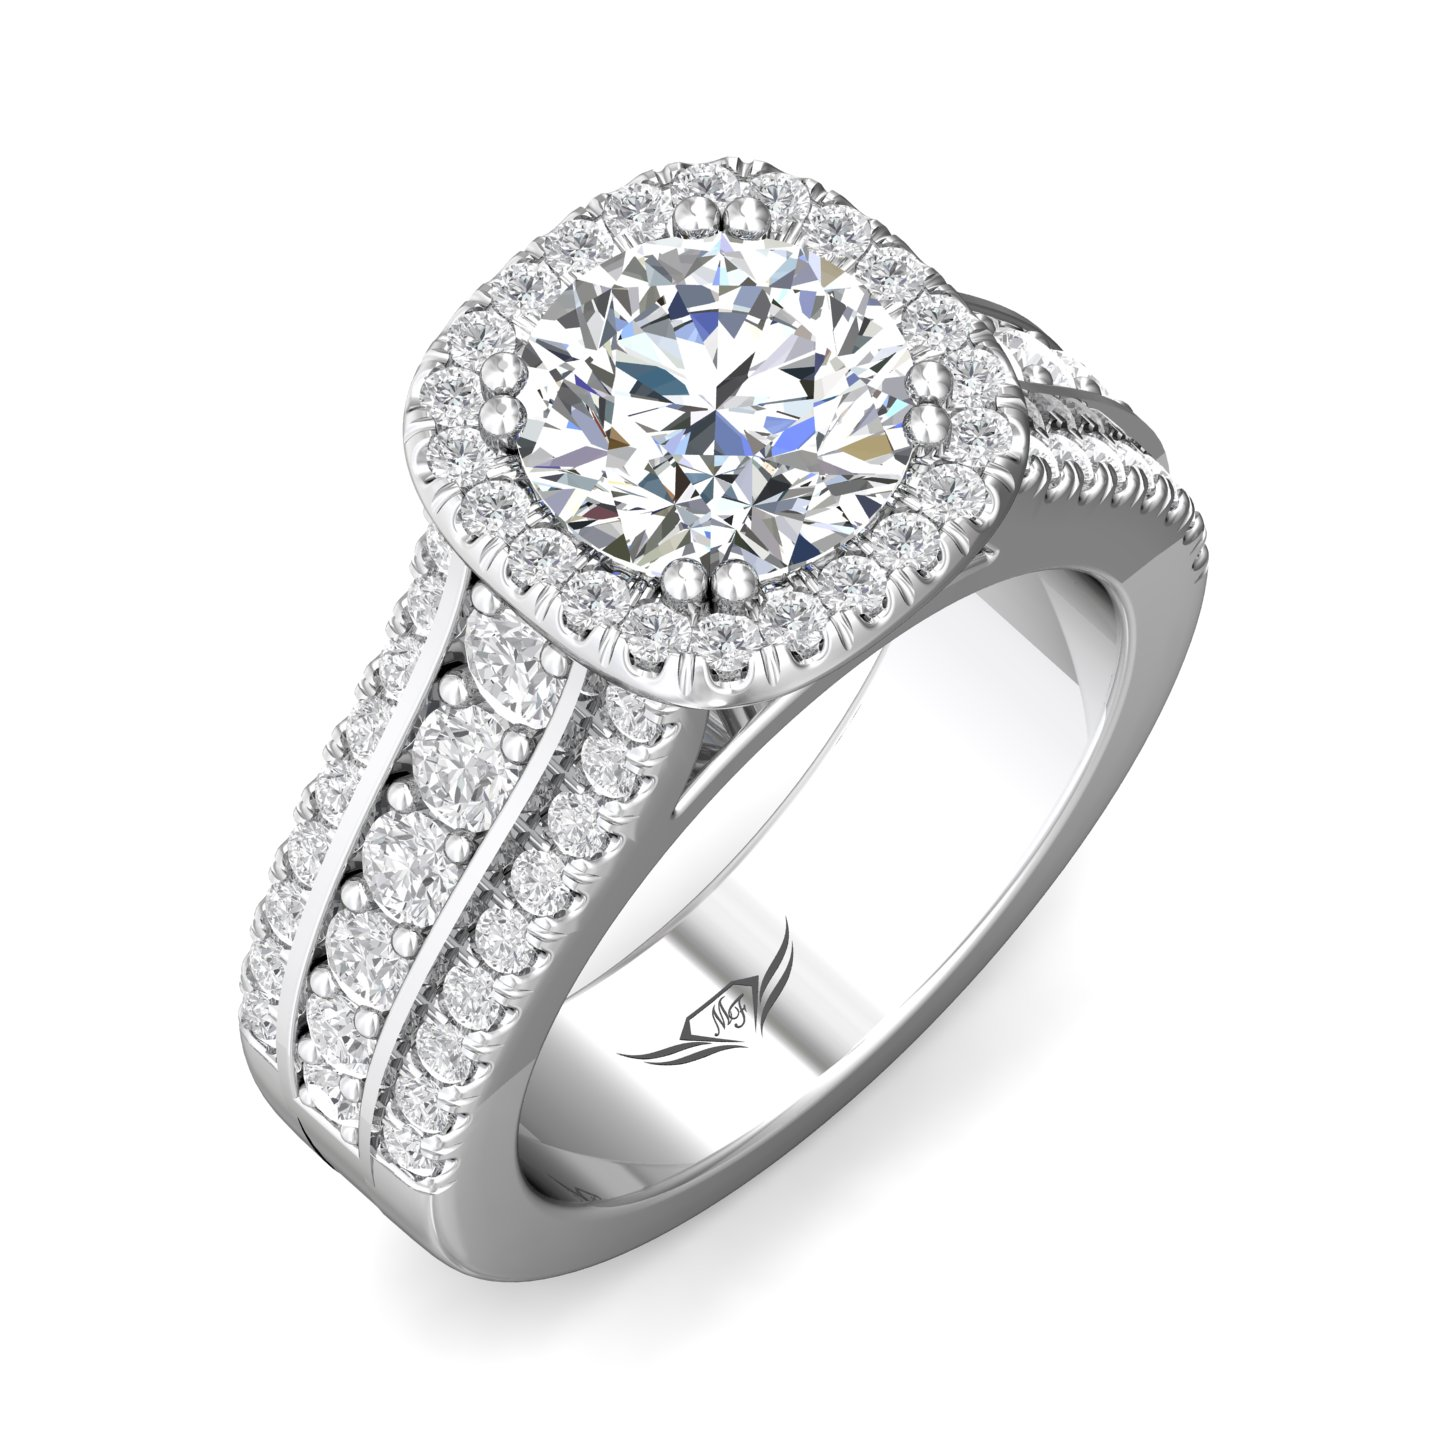 Rings - 14K White Gold FlyerFit Encore Engagement Ring - image #5